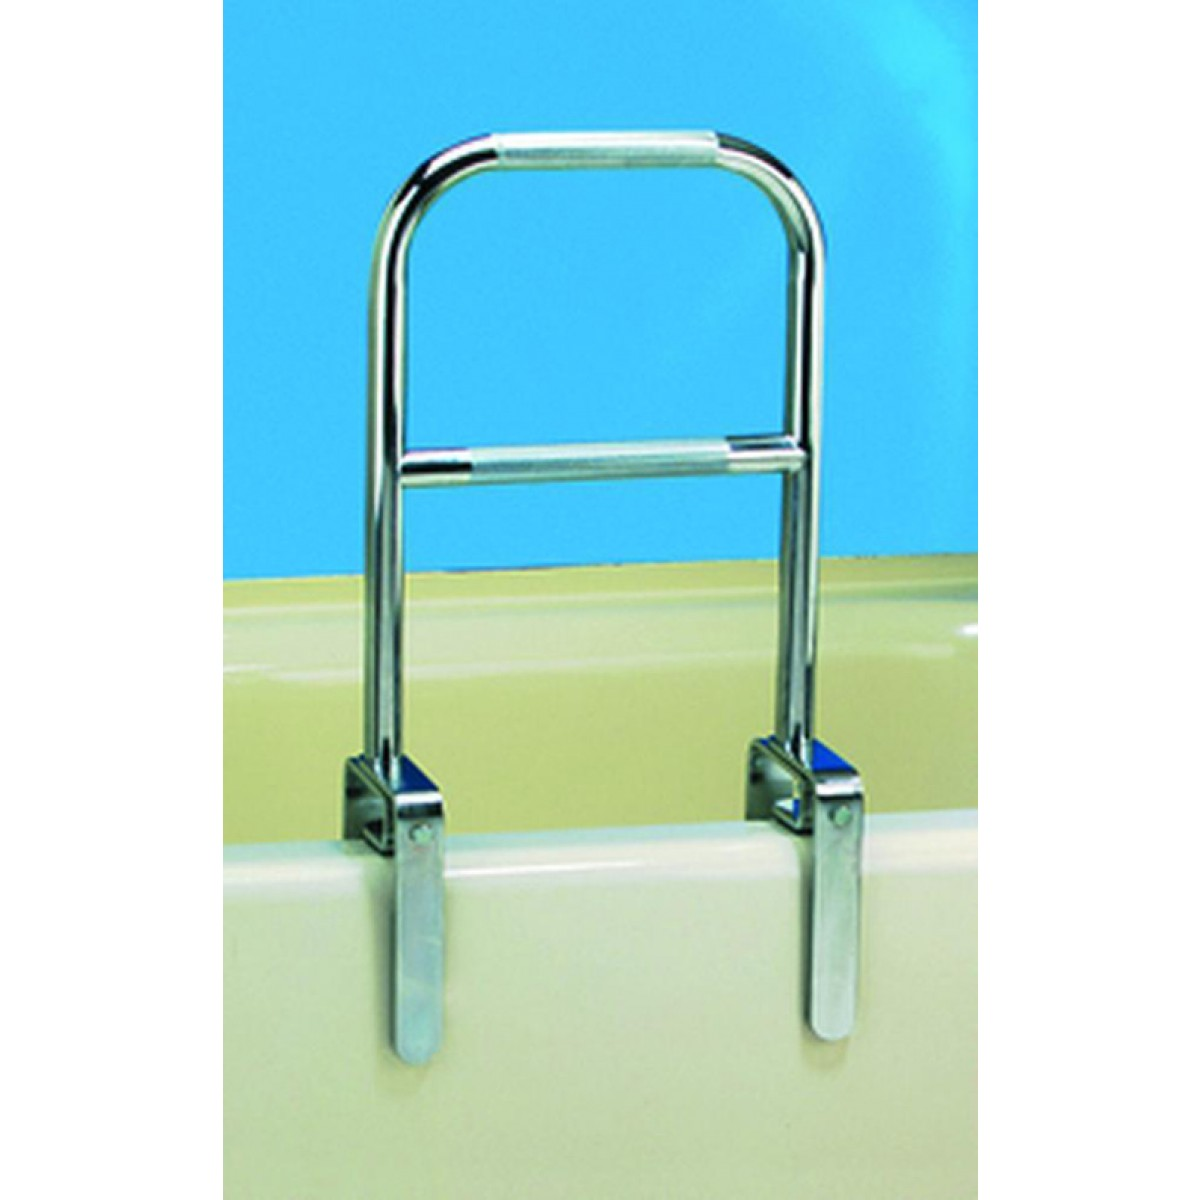 Bathtub Rail Dual Level By Carex On Sale With Unbeatable